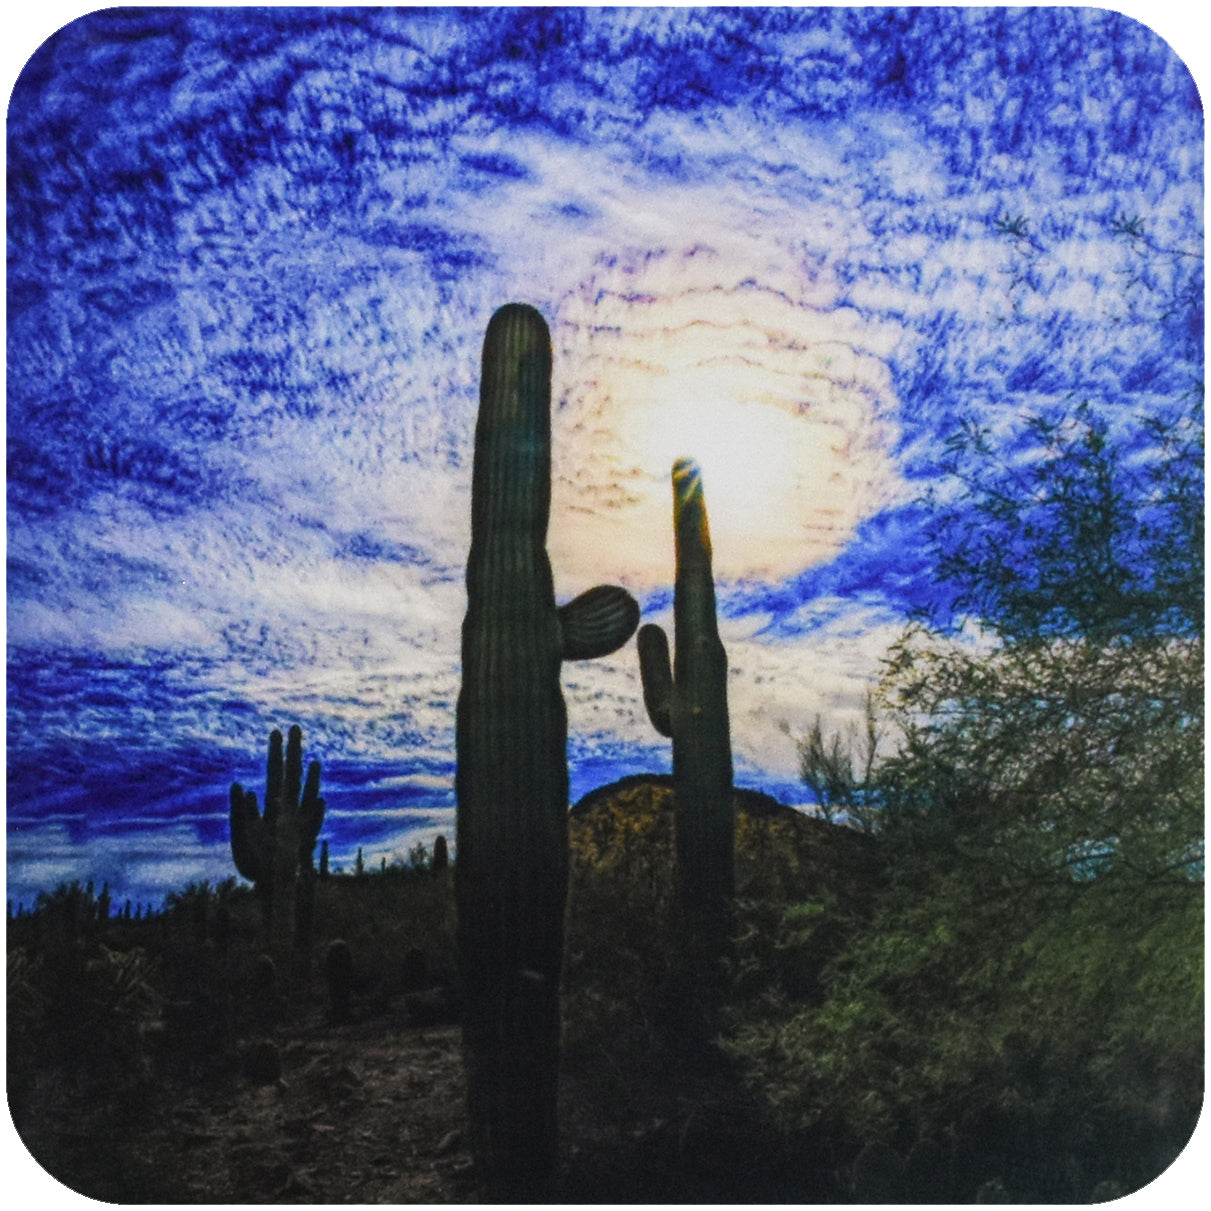 Desert Blues Cactus Coaster - Wear the Wonder